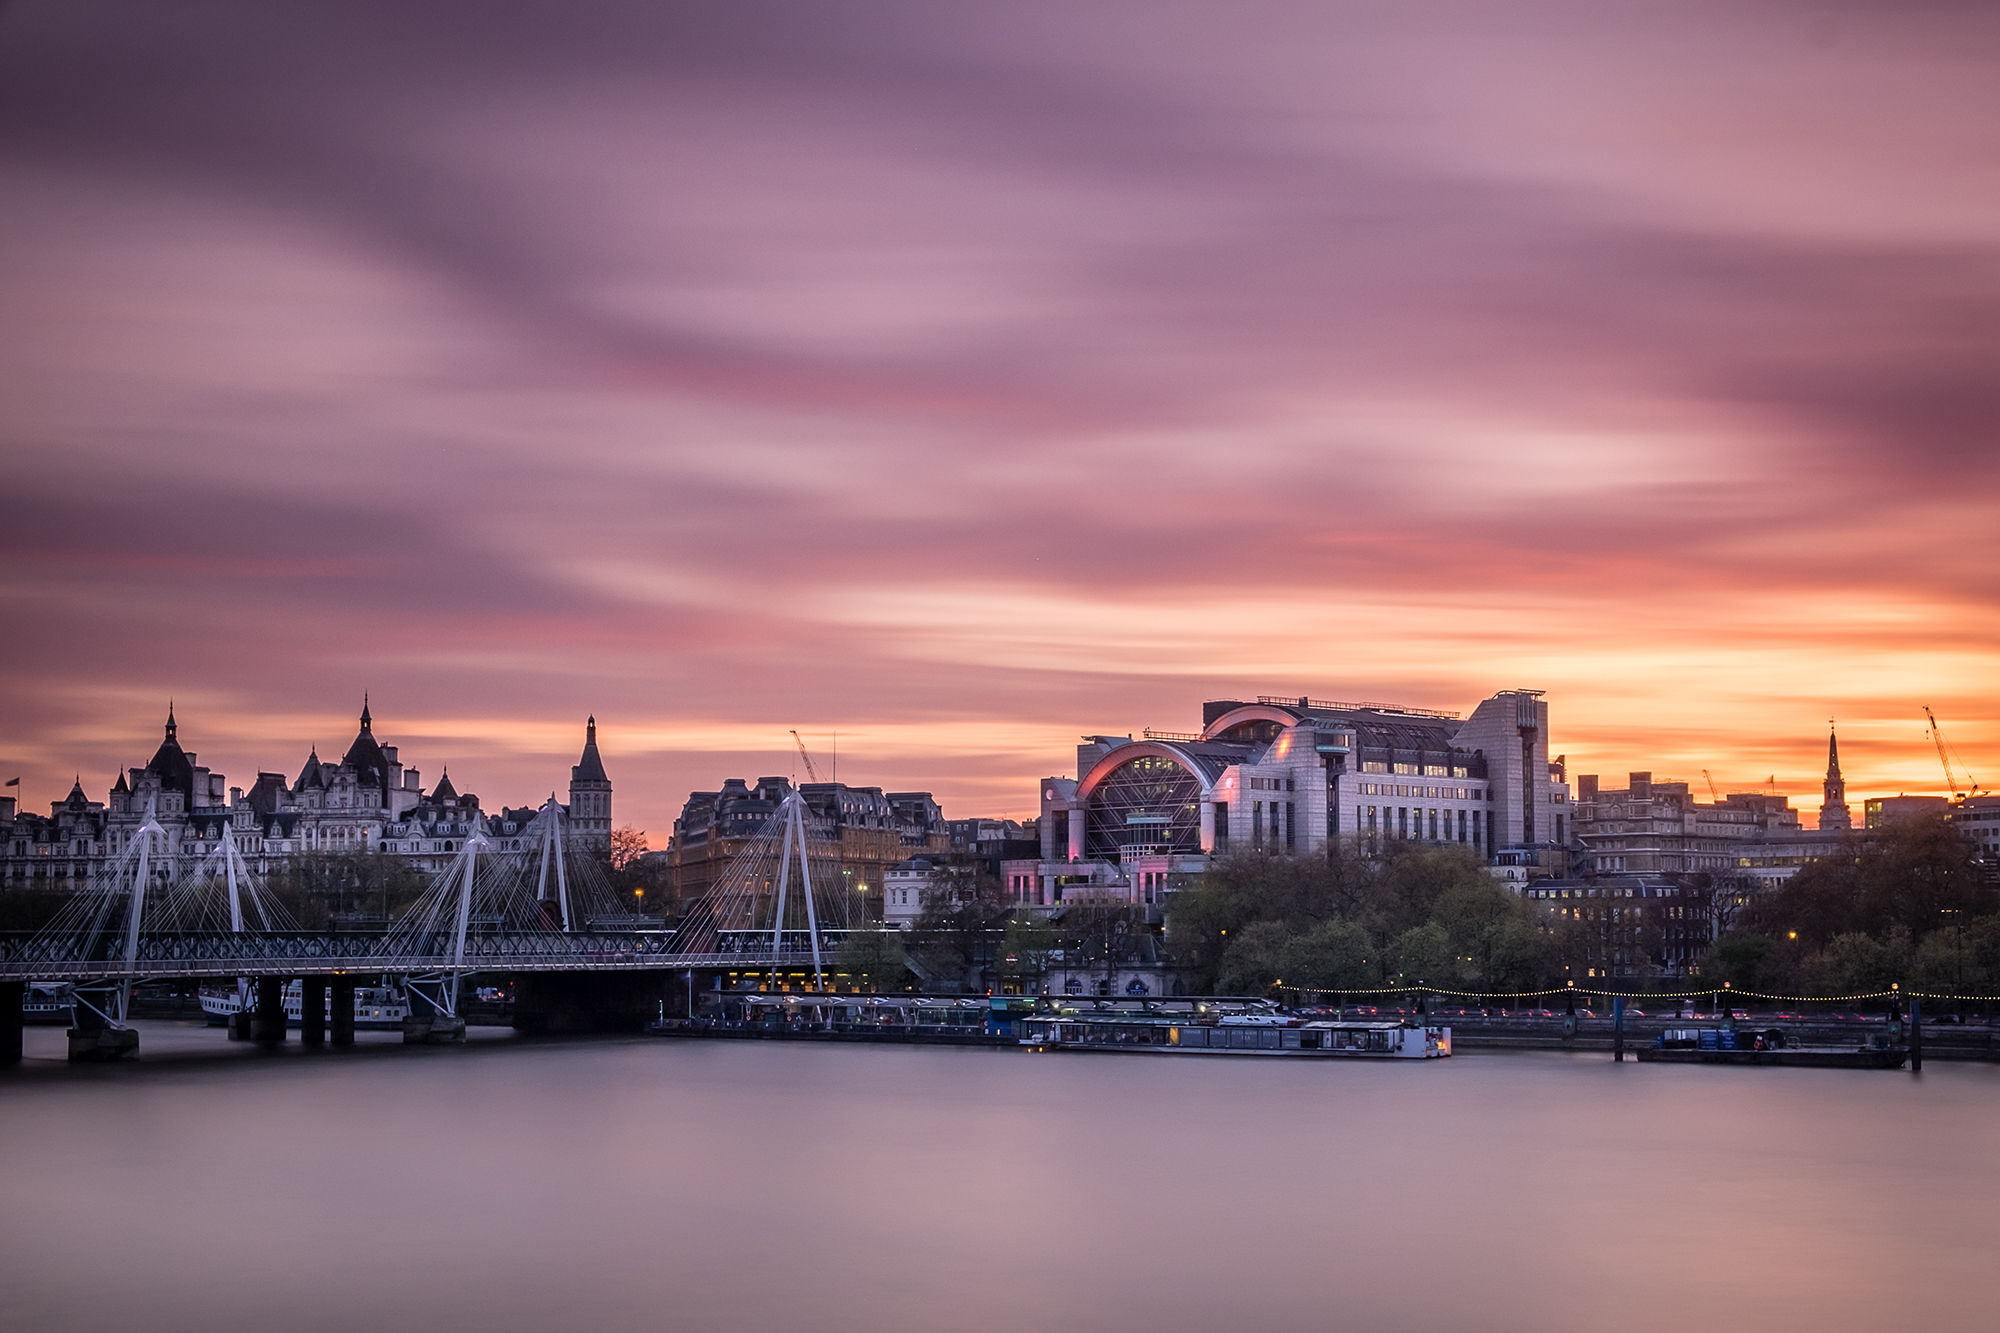 Photo of Charing Cross Station at sunset taken by Trevor Sherwin